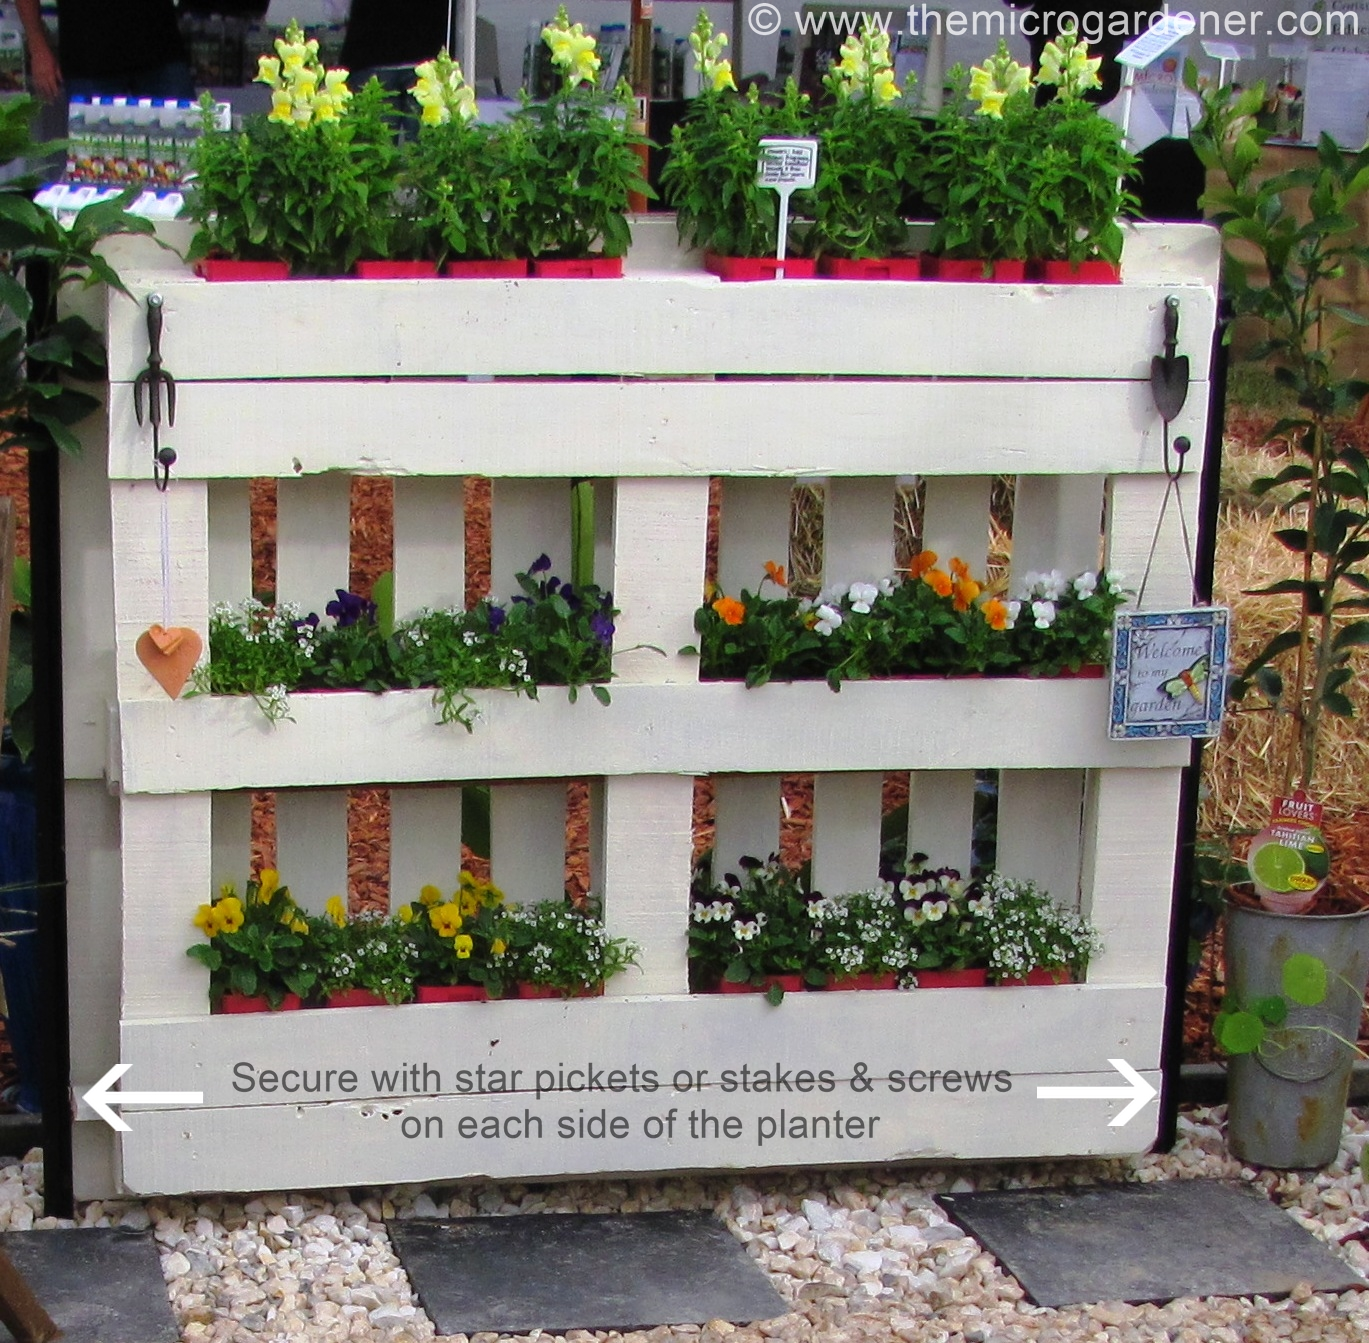 Aweinspiring Place As It Is Very Diy Pallet Planter Micro Gardener Diy Pallet Herb Garden Pallet Planter Needs To Be Secured garden Diy Pallet Herb Garden